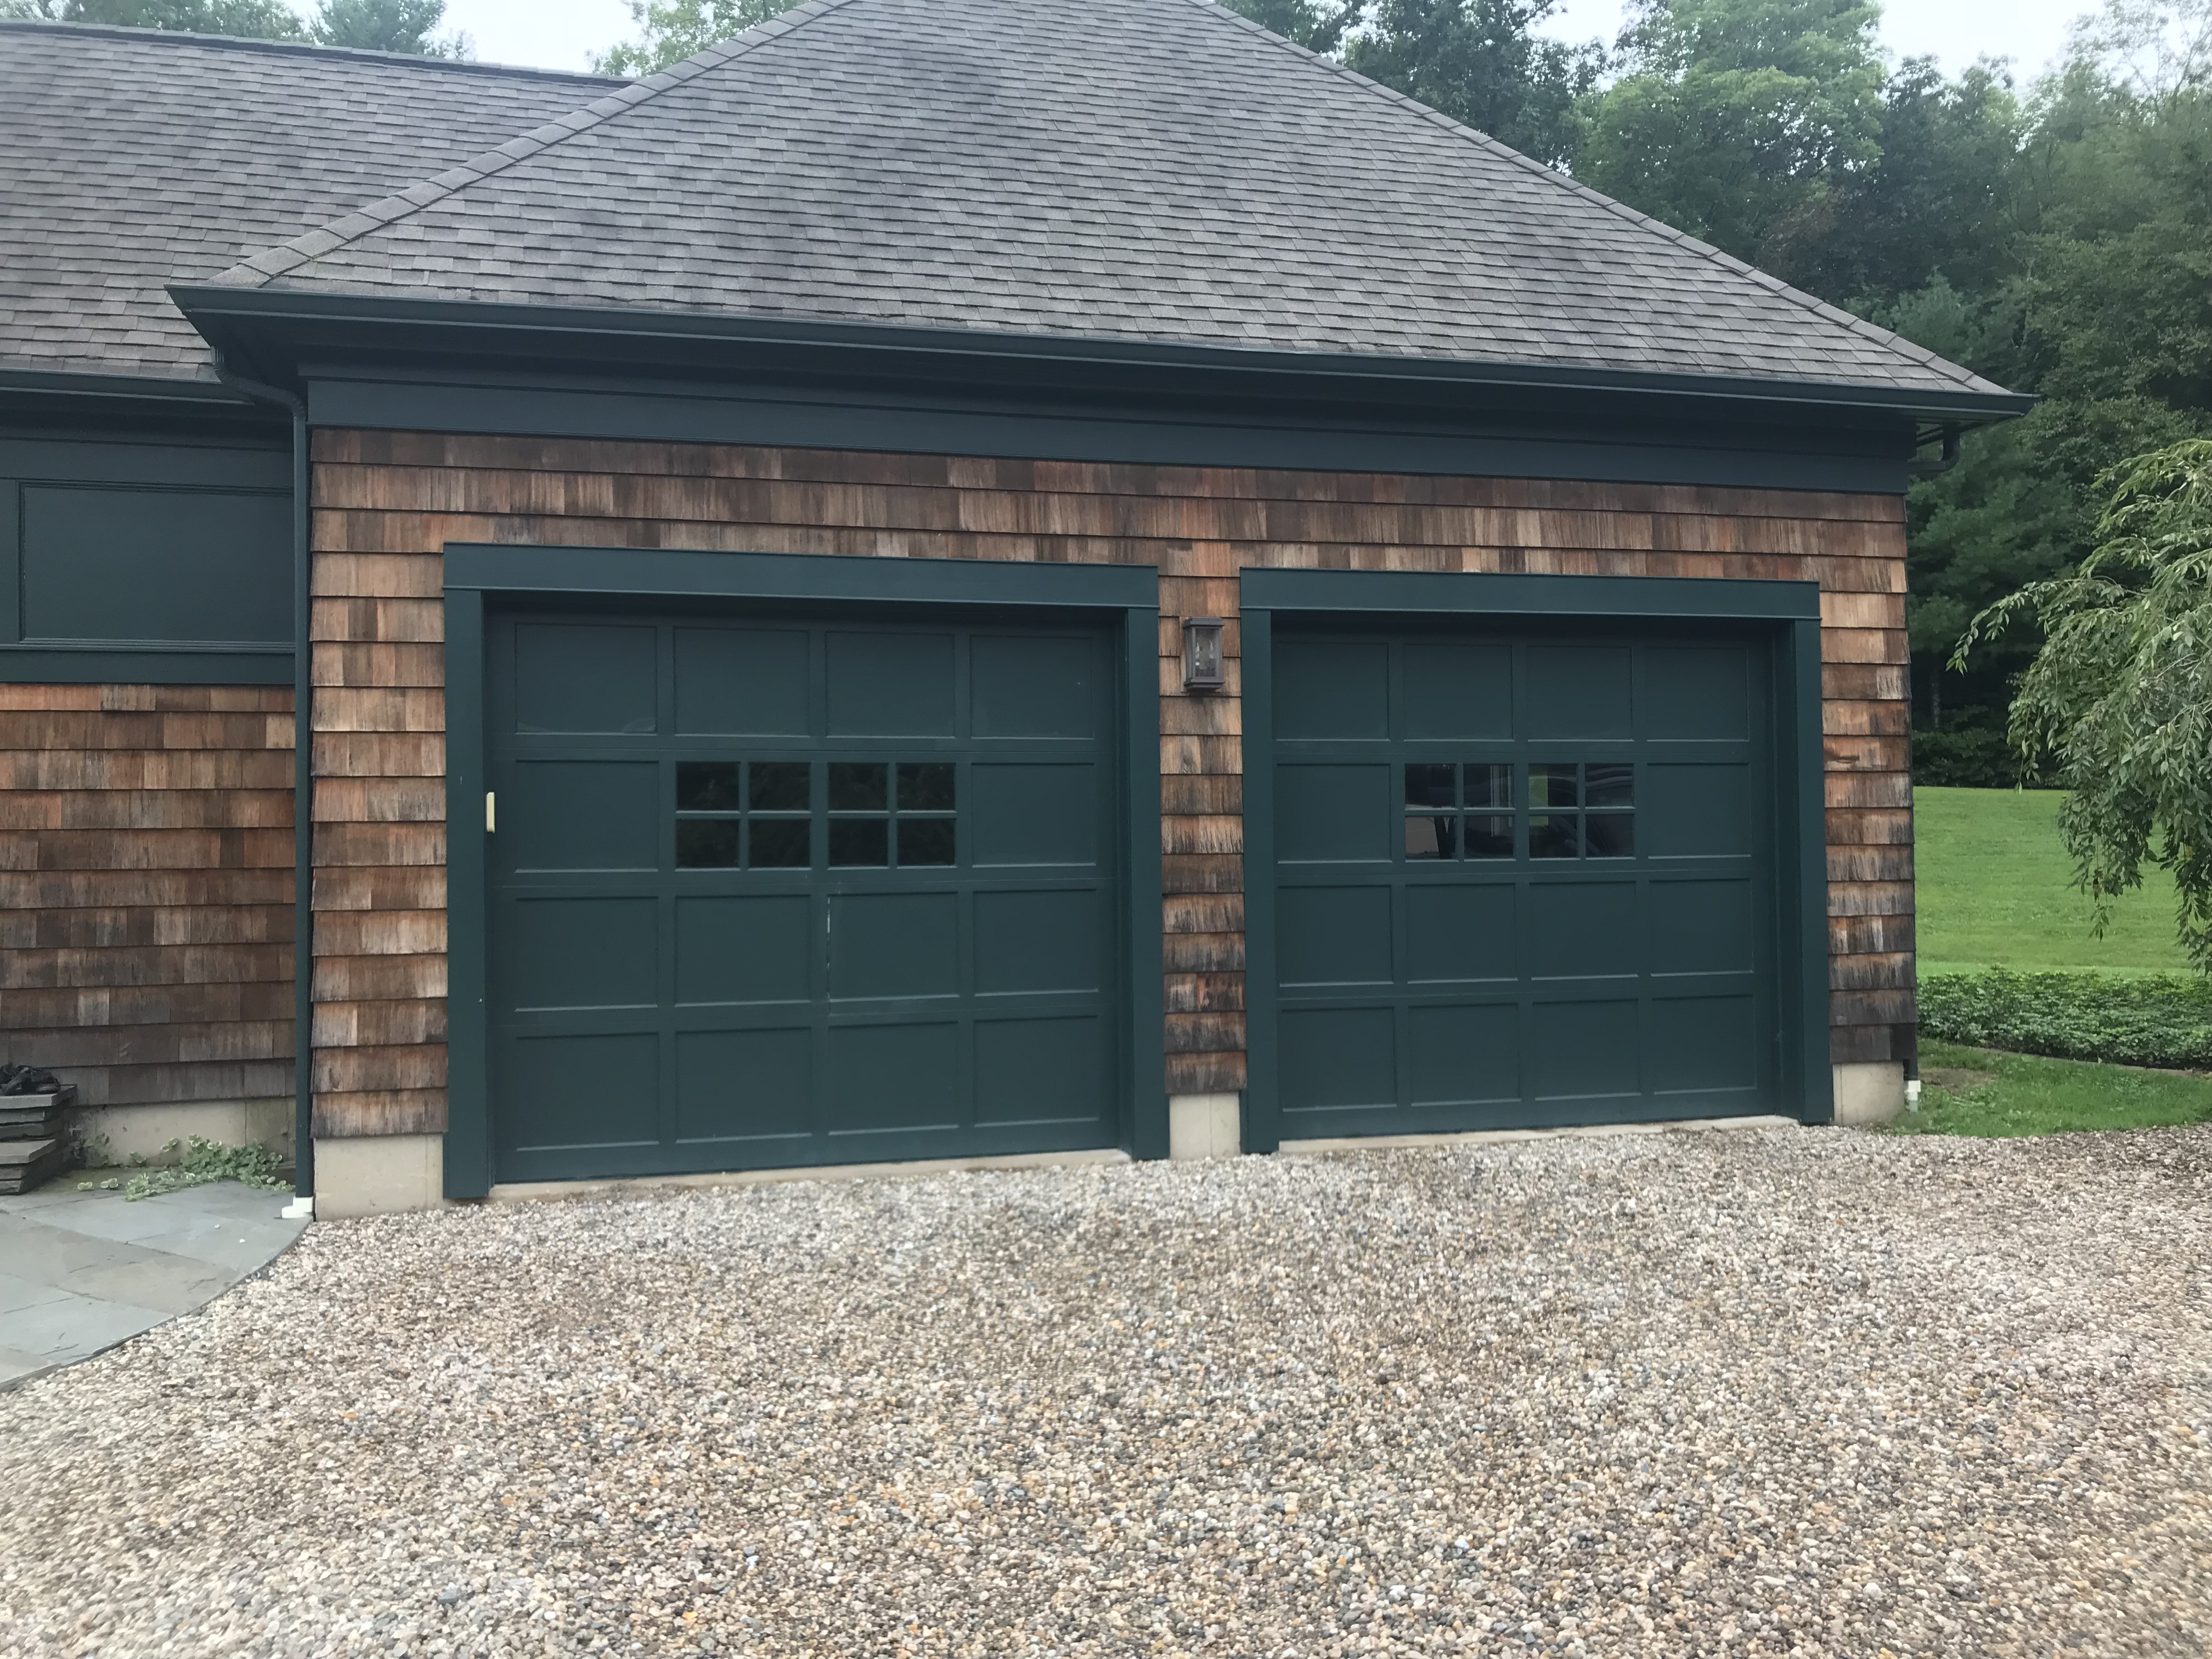 More than one garage door of different sizes to replace or fix? No problem!